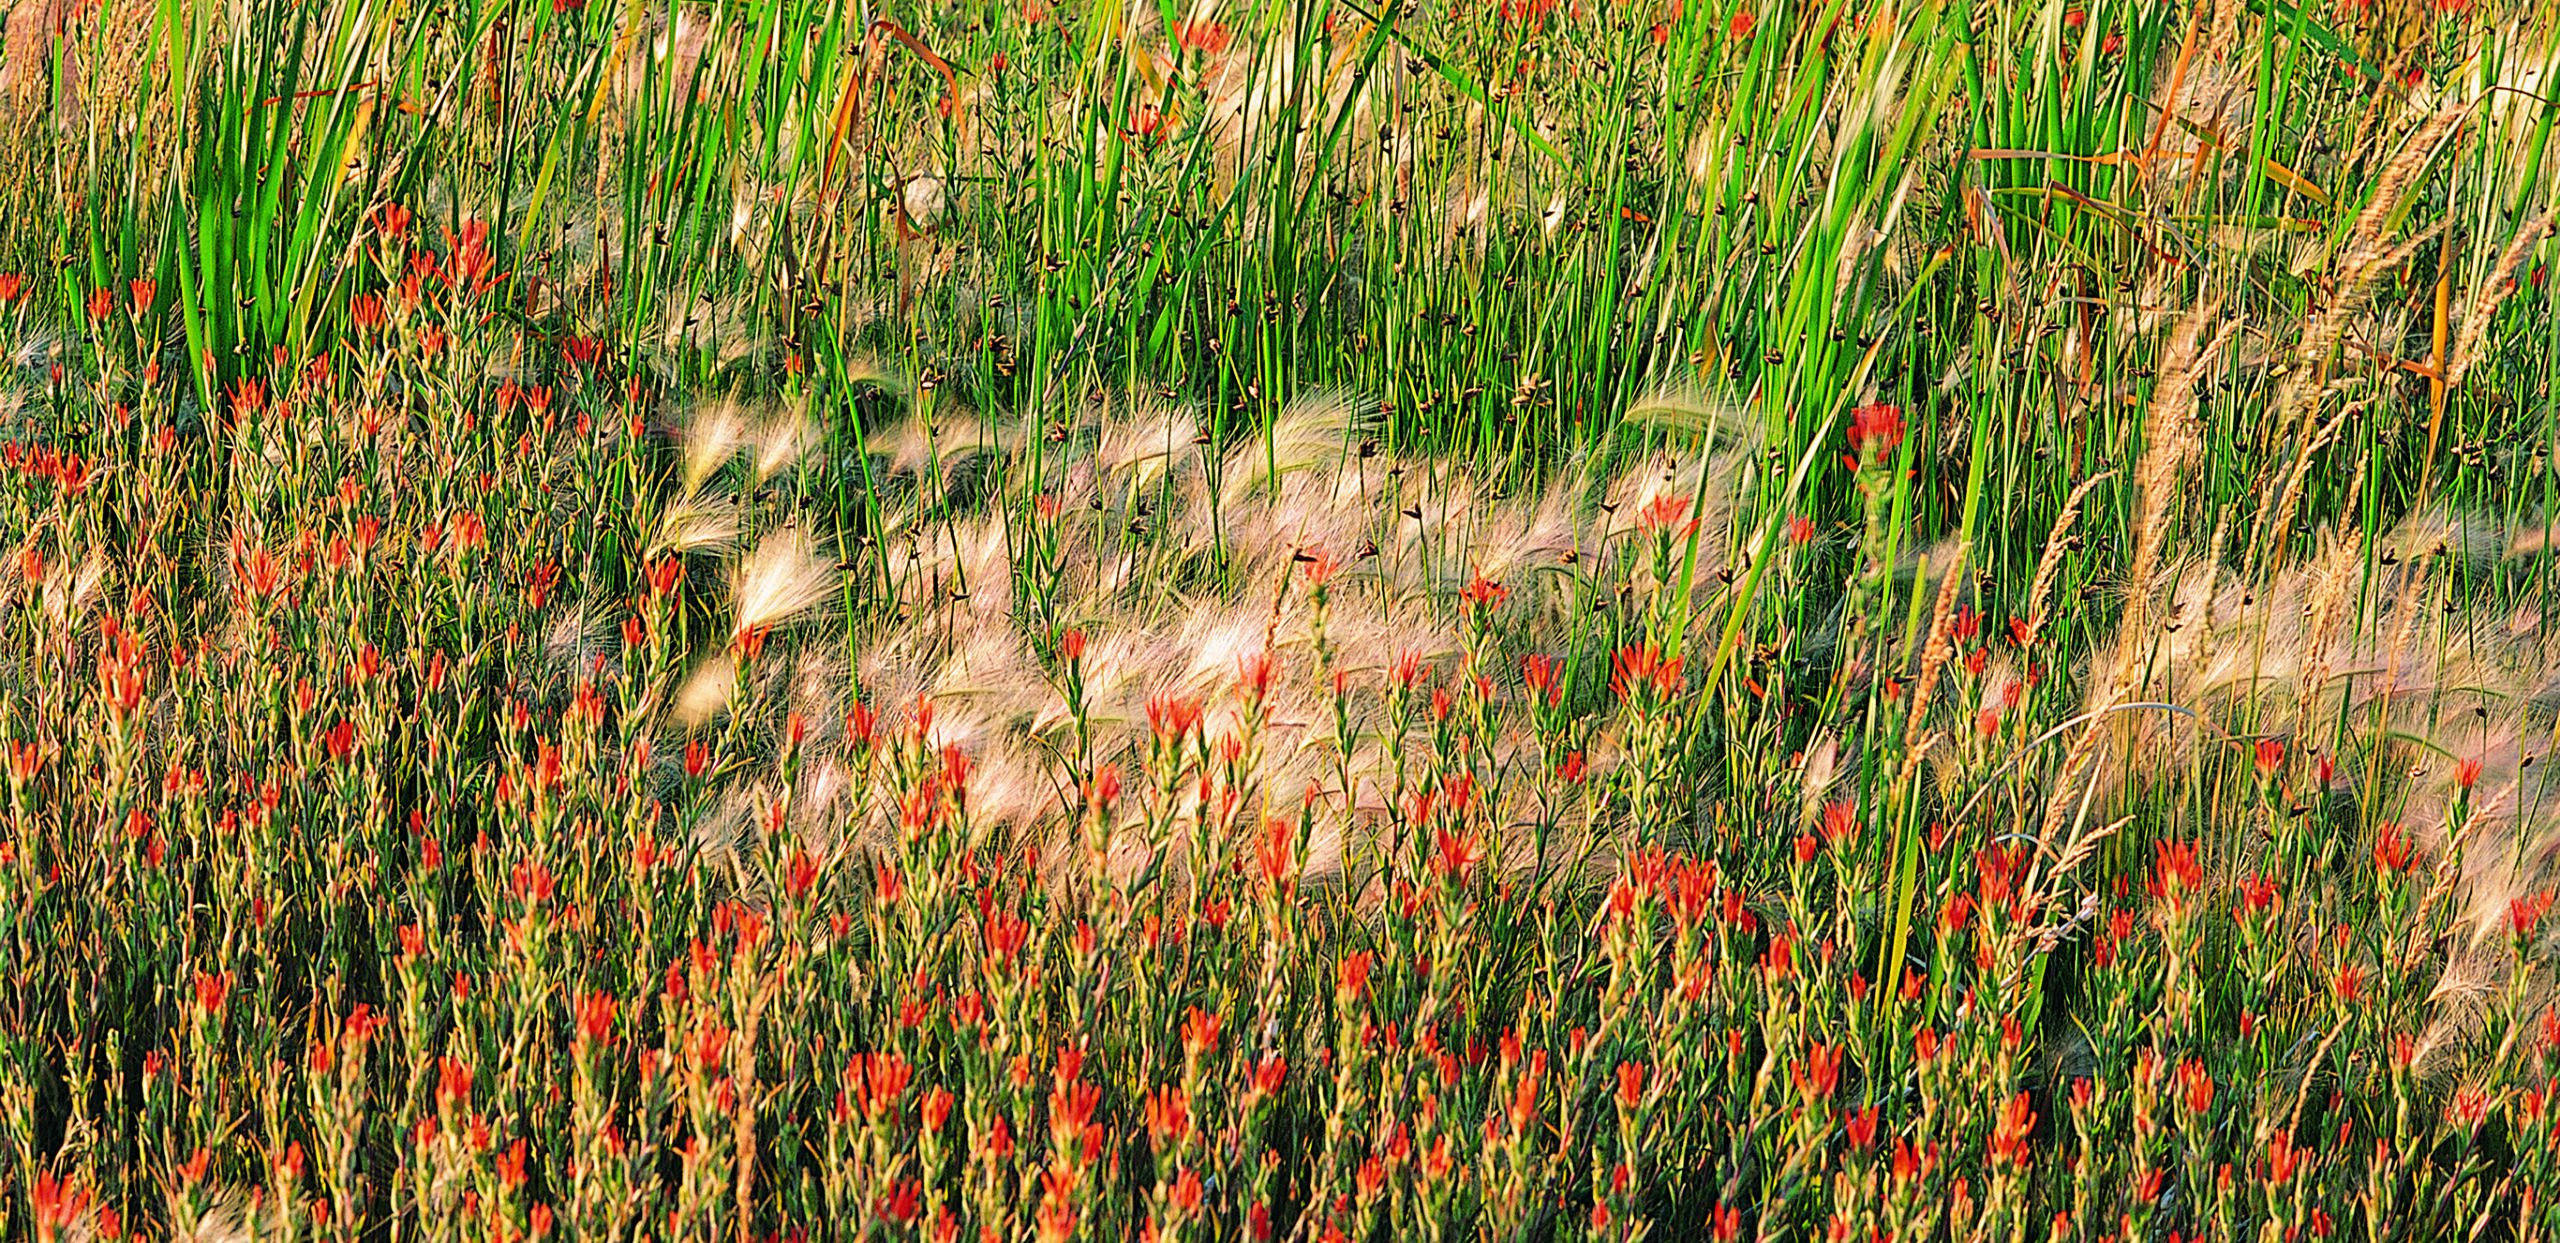 Grasses and wildflowers, Cooley Dickinson Health Care System, Northampton, MA 01060.